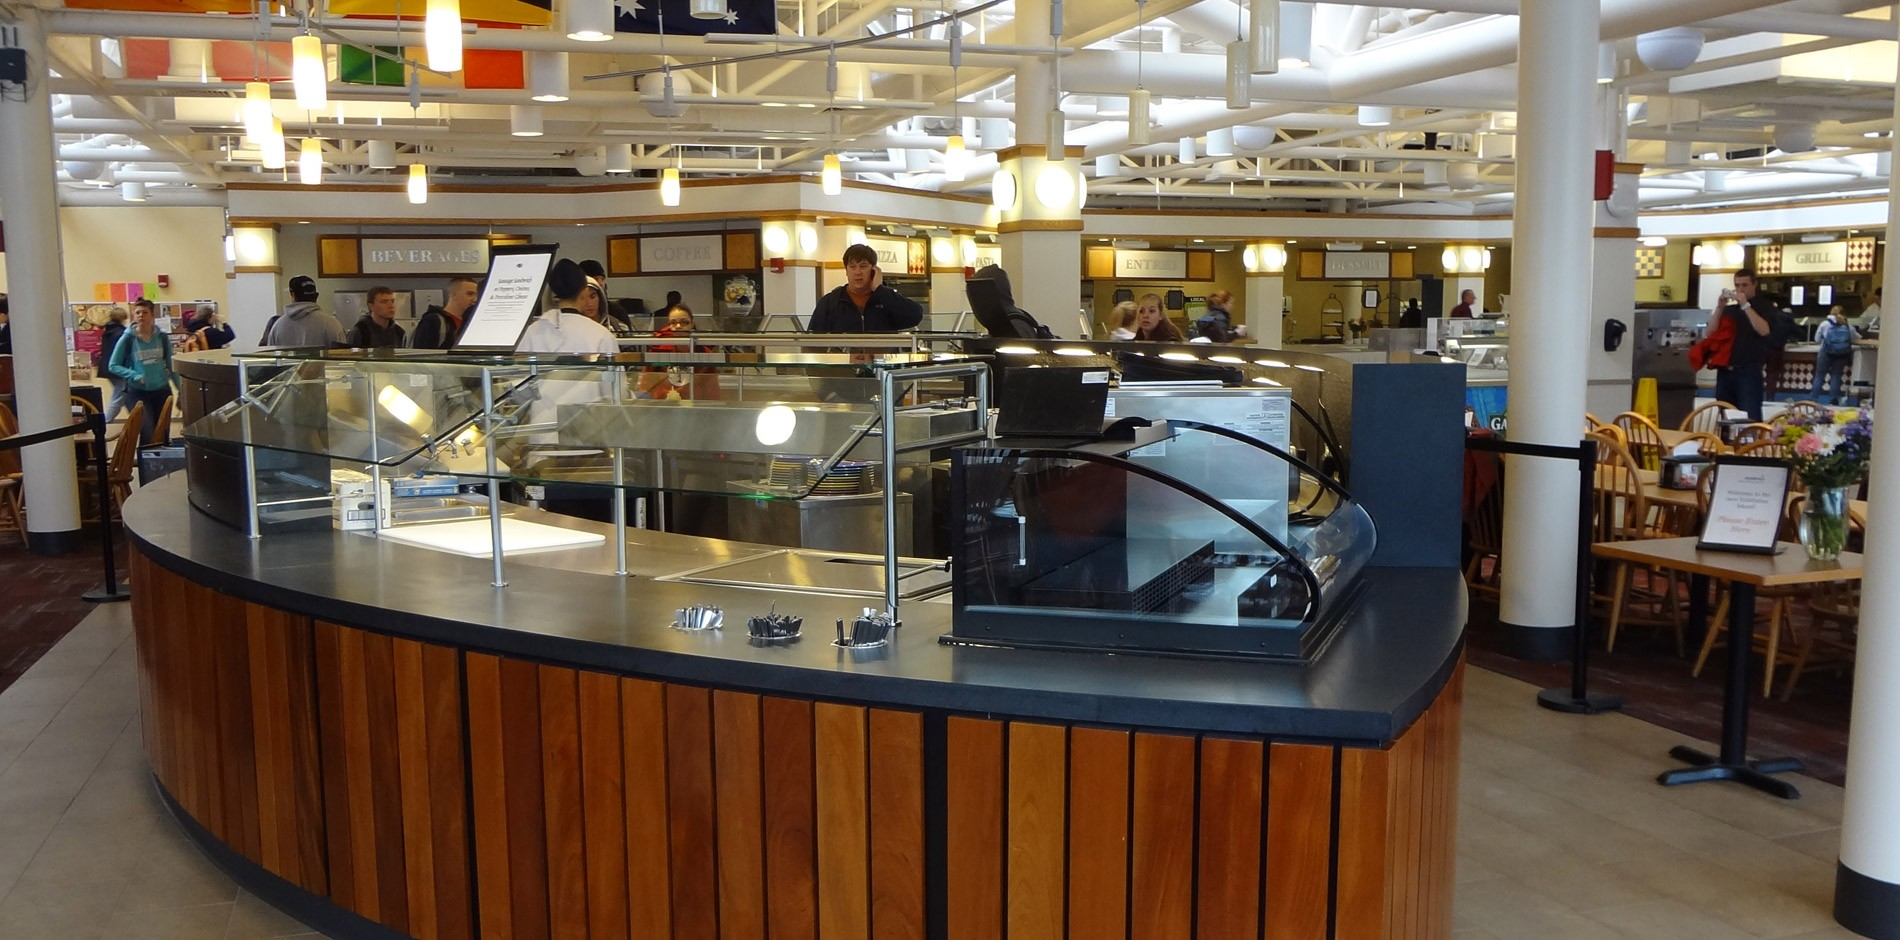 Westfield State University >> Westfield State University Tim And Jeanne S Dining Commons